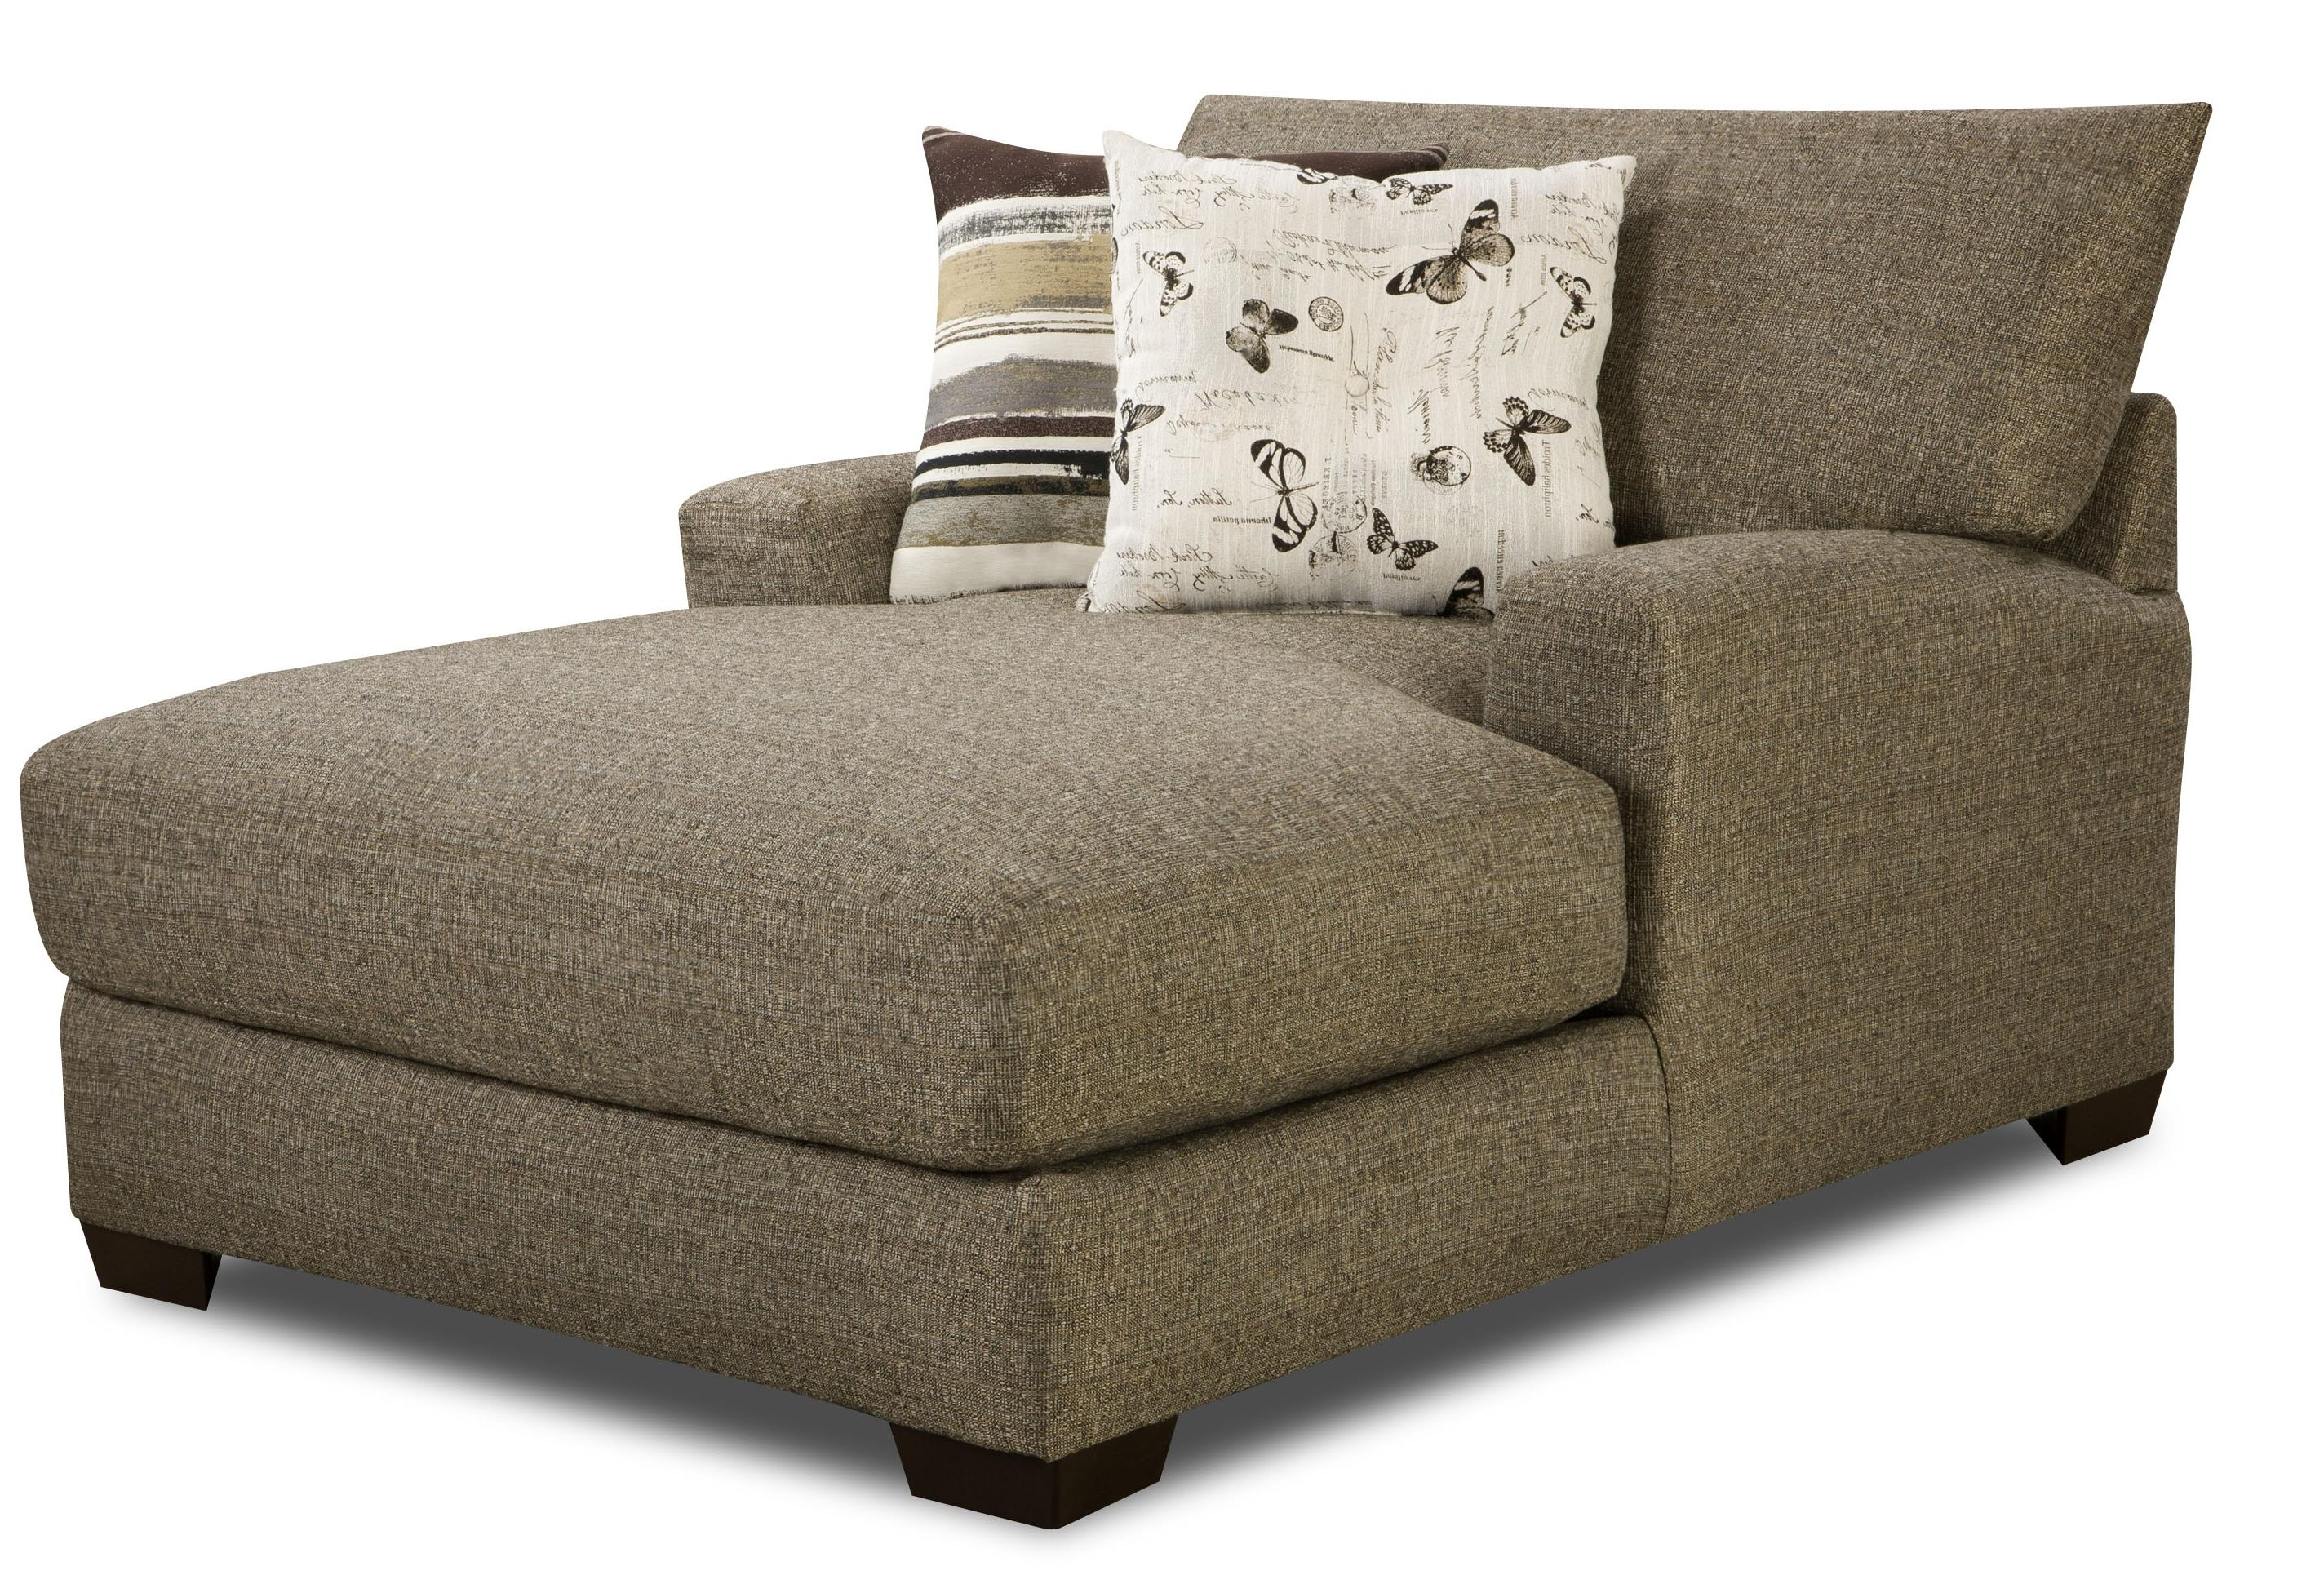 Current Interior: Alluring Furniture Chaise Lounge Indoor For Living Room In Indoor Chaise Lounge Covers (View 5 of 15)